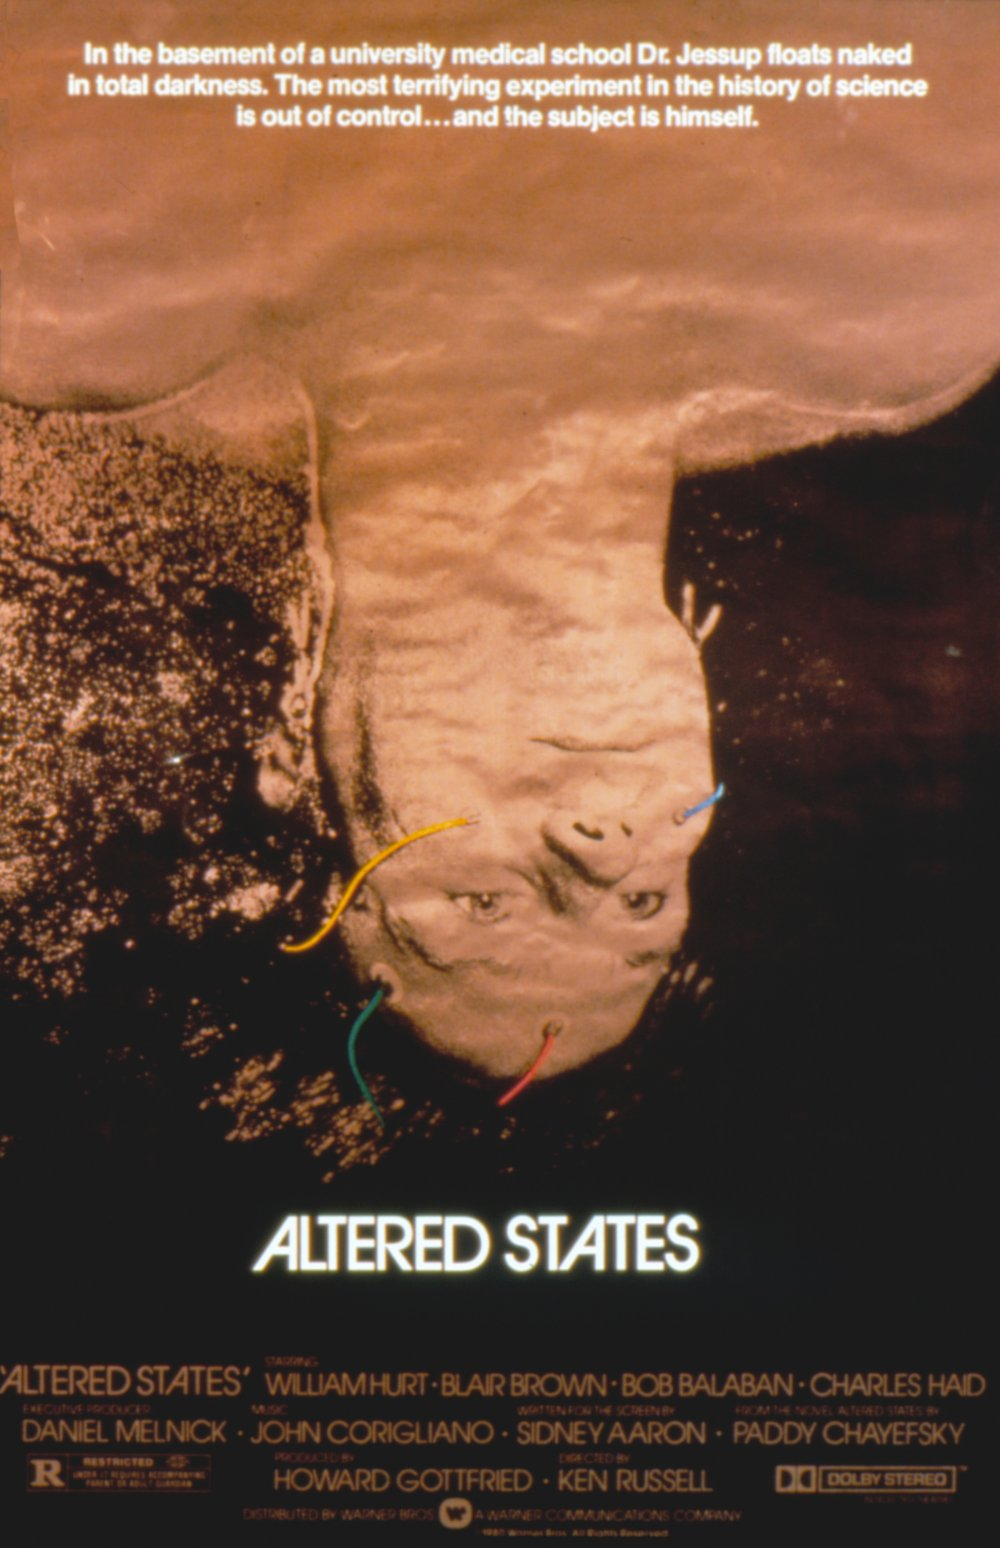 Altered States (1986)